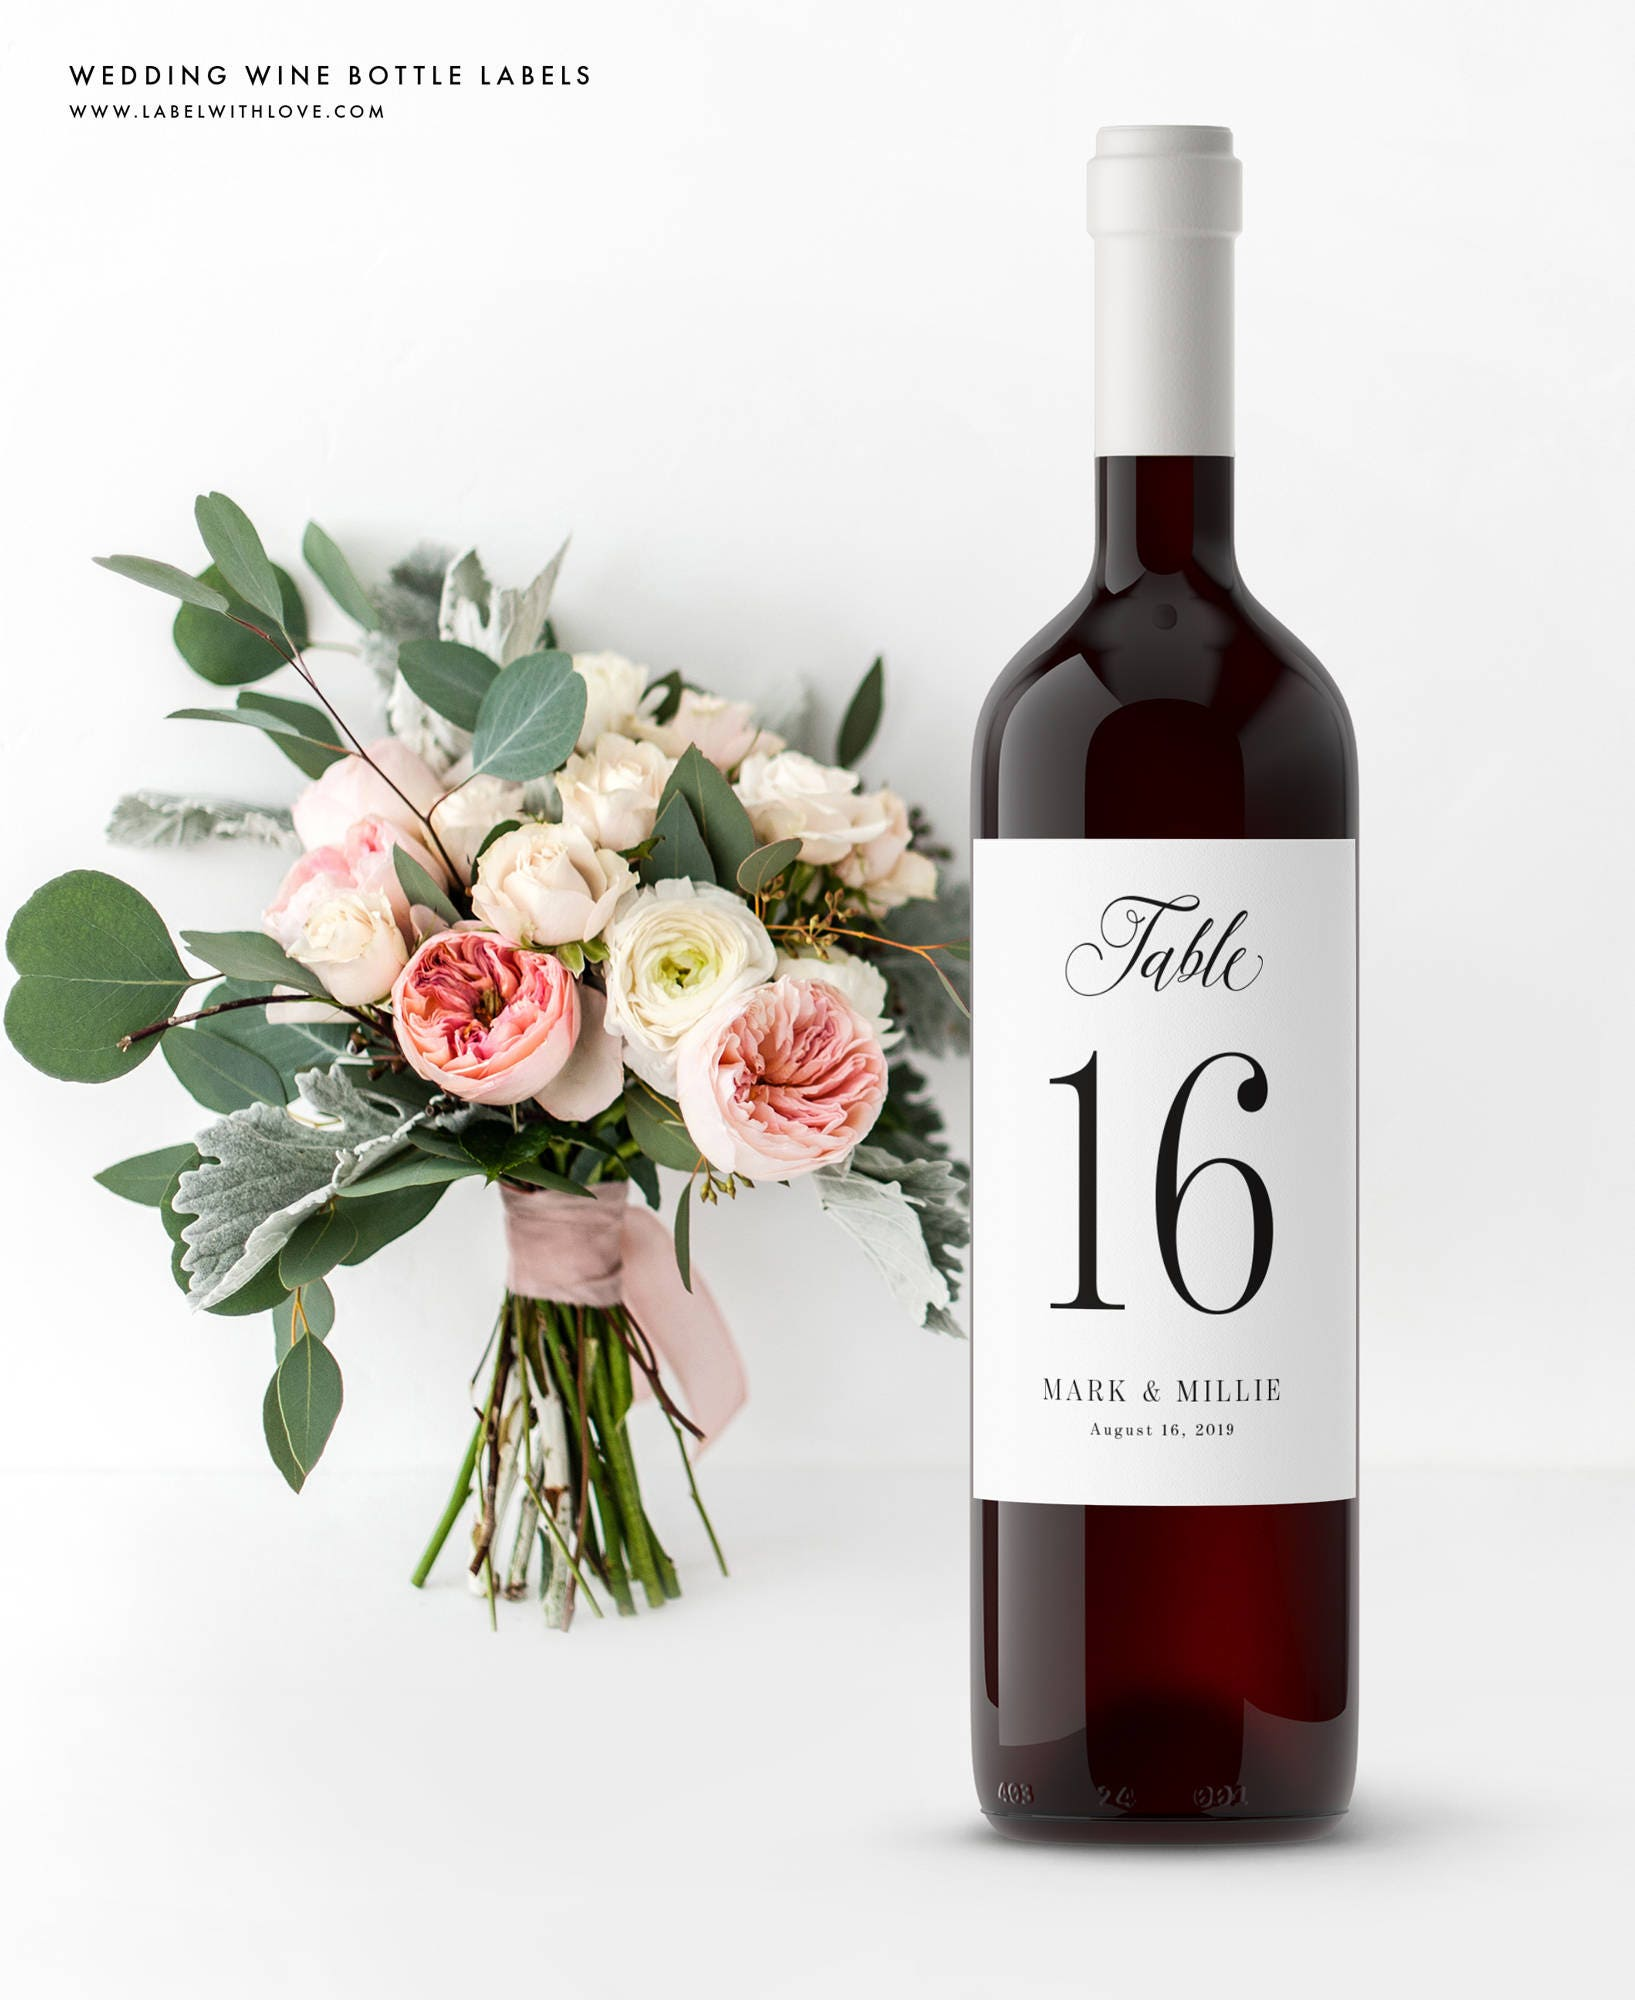 Wedding Wine Table Numbers - Wine Bottle Labels - Self Adhesive ...